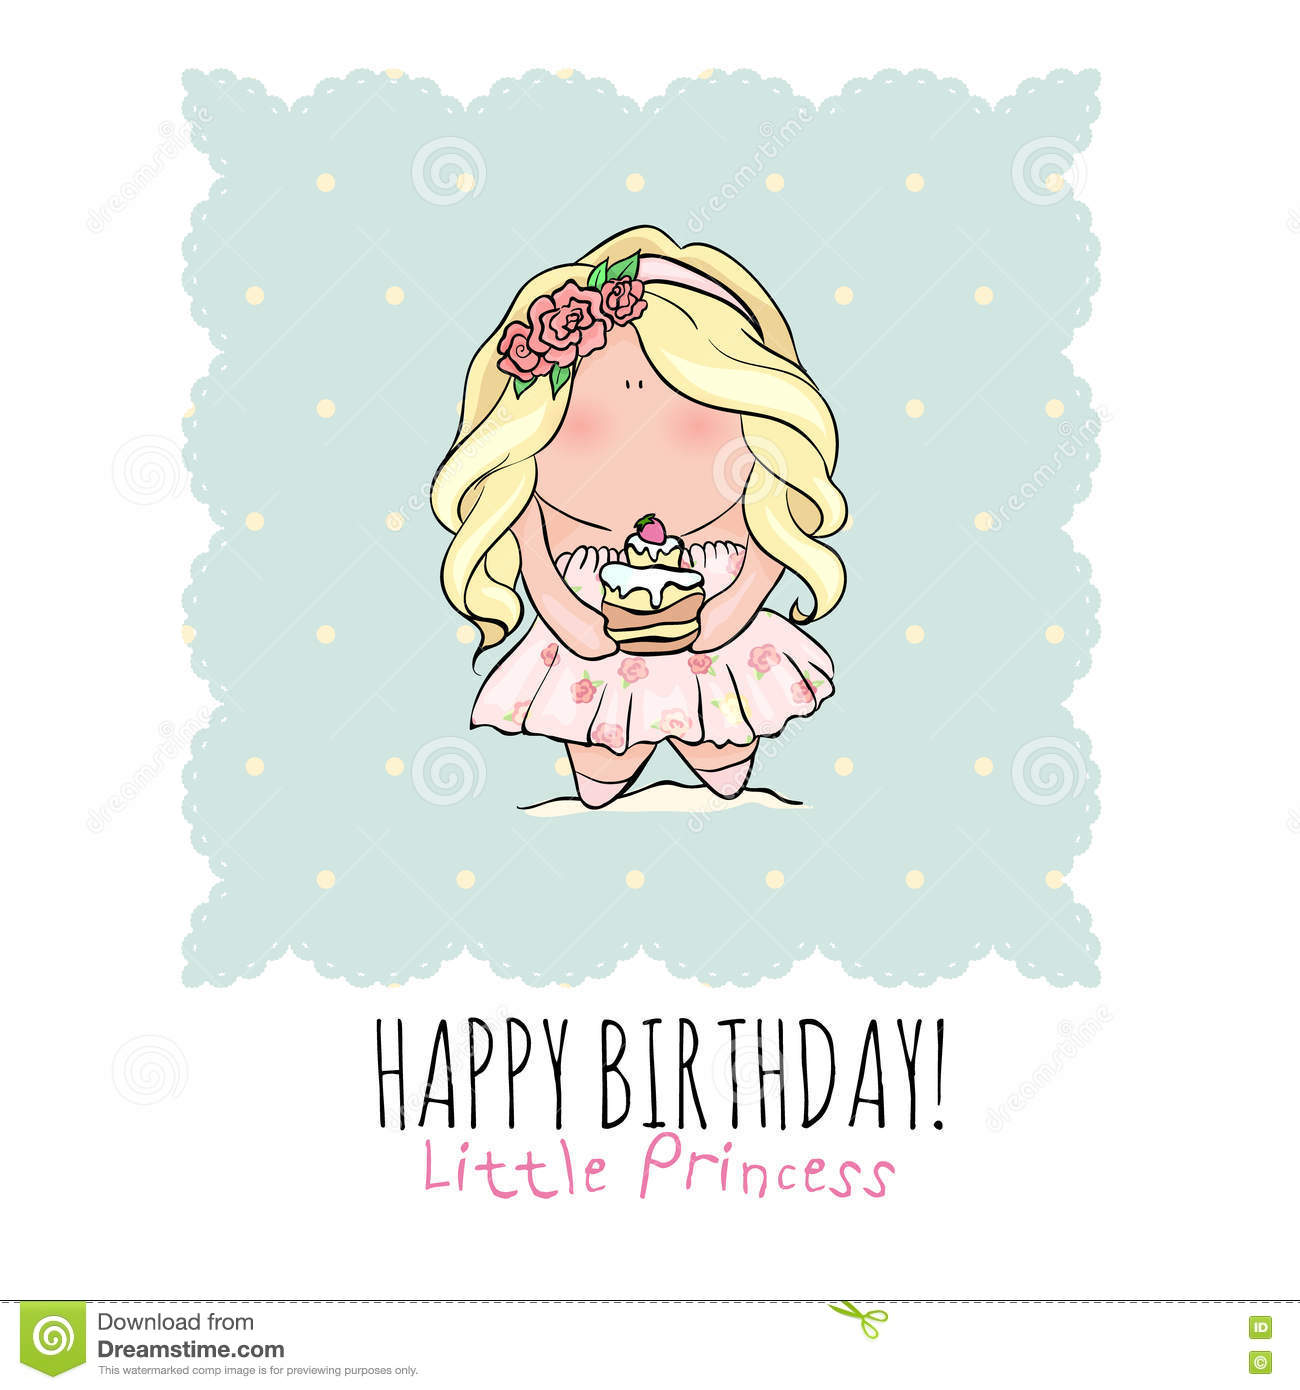 birthday card for little girl ; happy-birthday-card-girl-cute-little-girl-doodle-poster-style-holding-cake-blue-pink-color-princess-cupcake-73619482